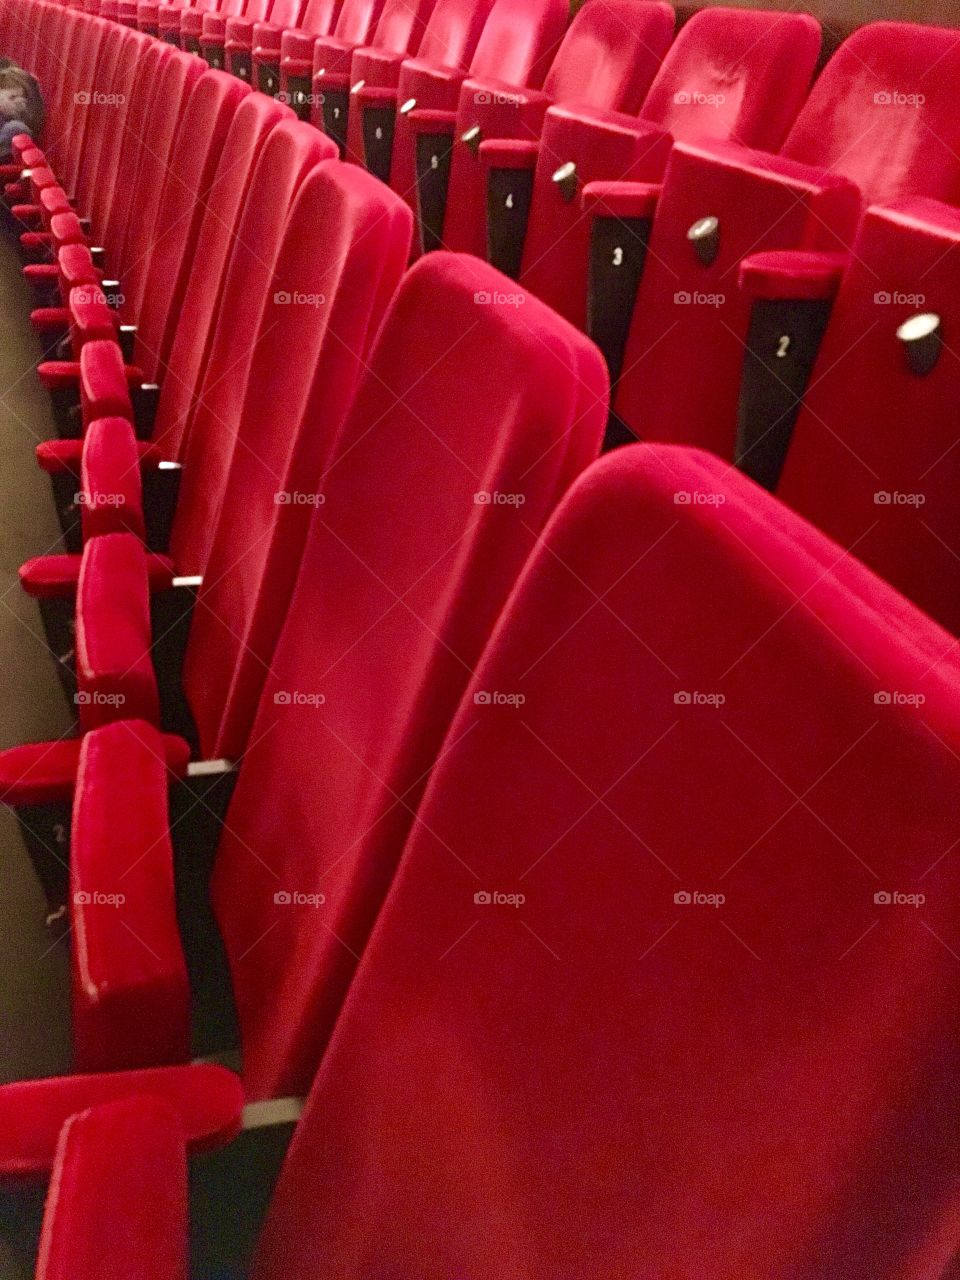 Red chairs in opera house